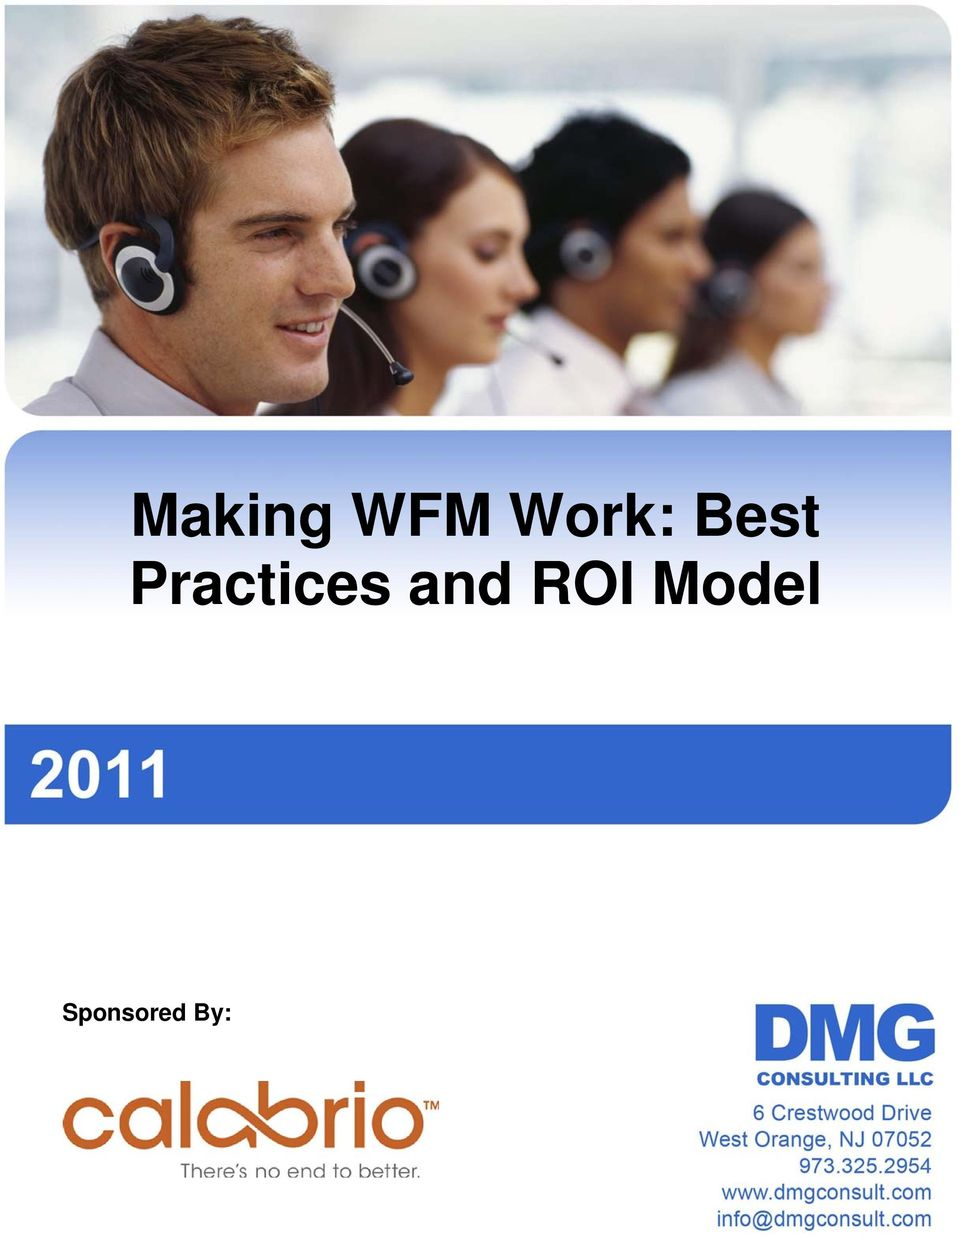 WFM Work: Best Practices and ROI Model